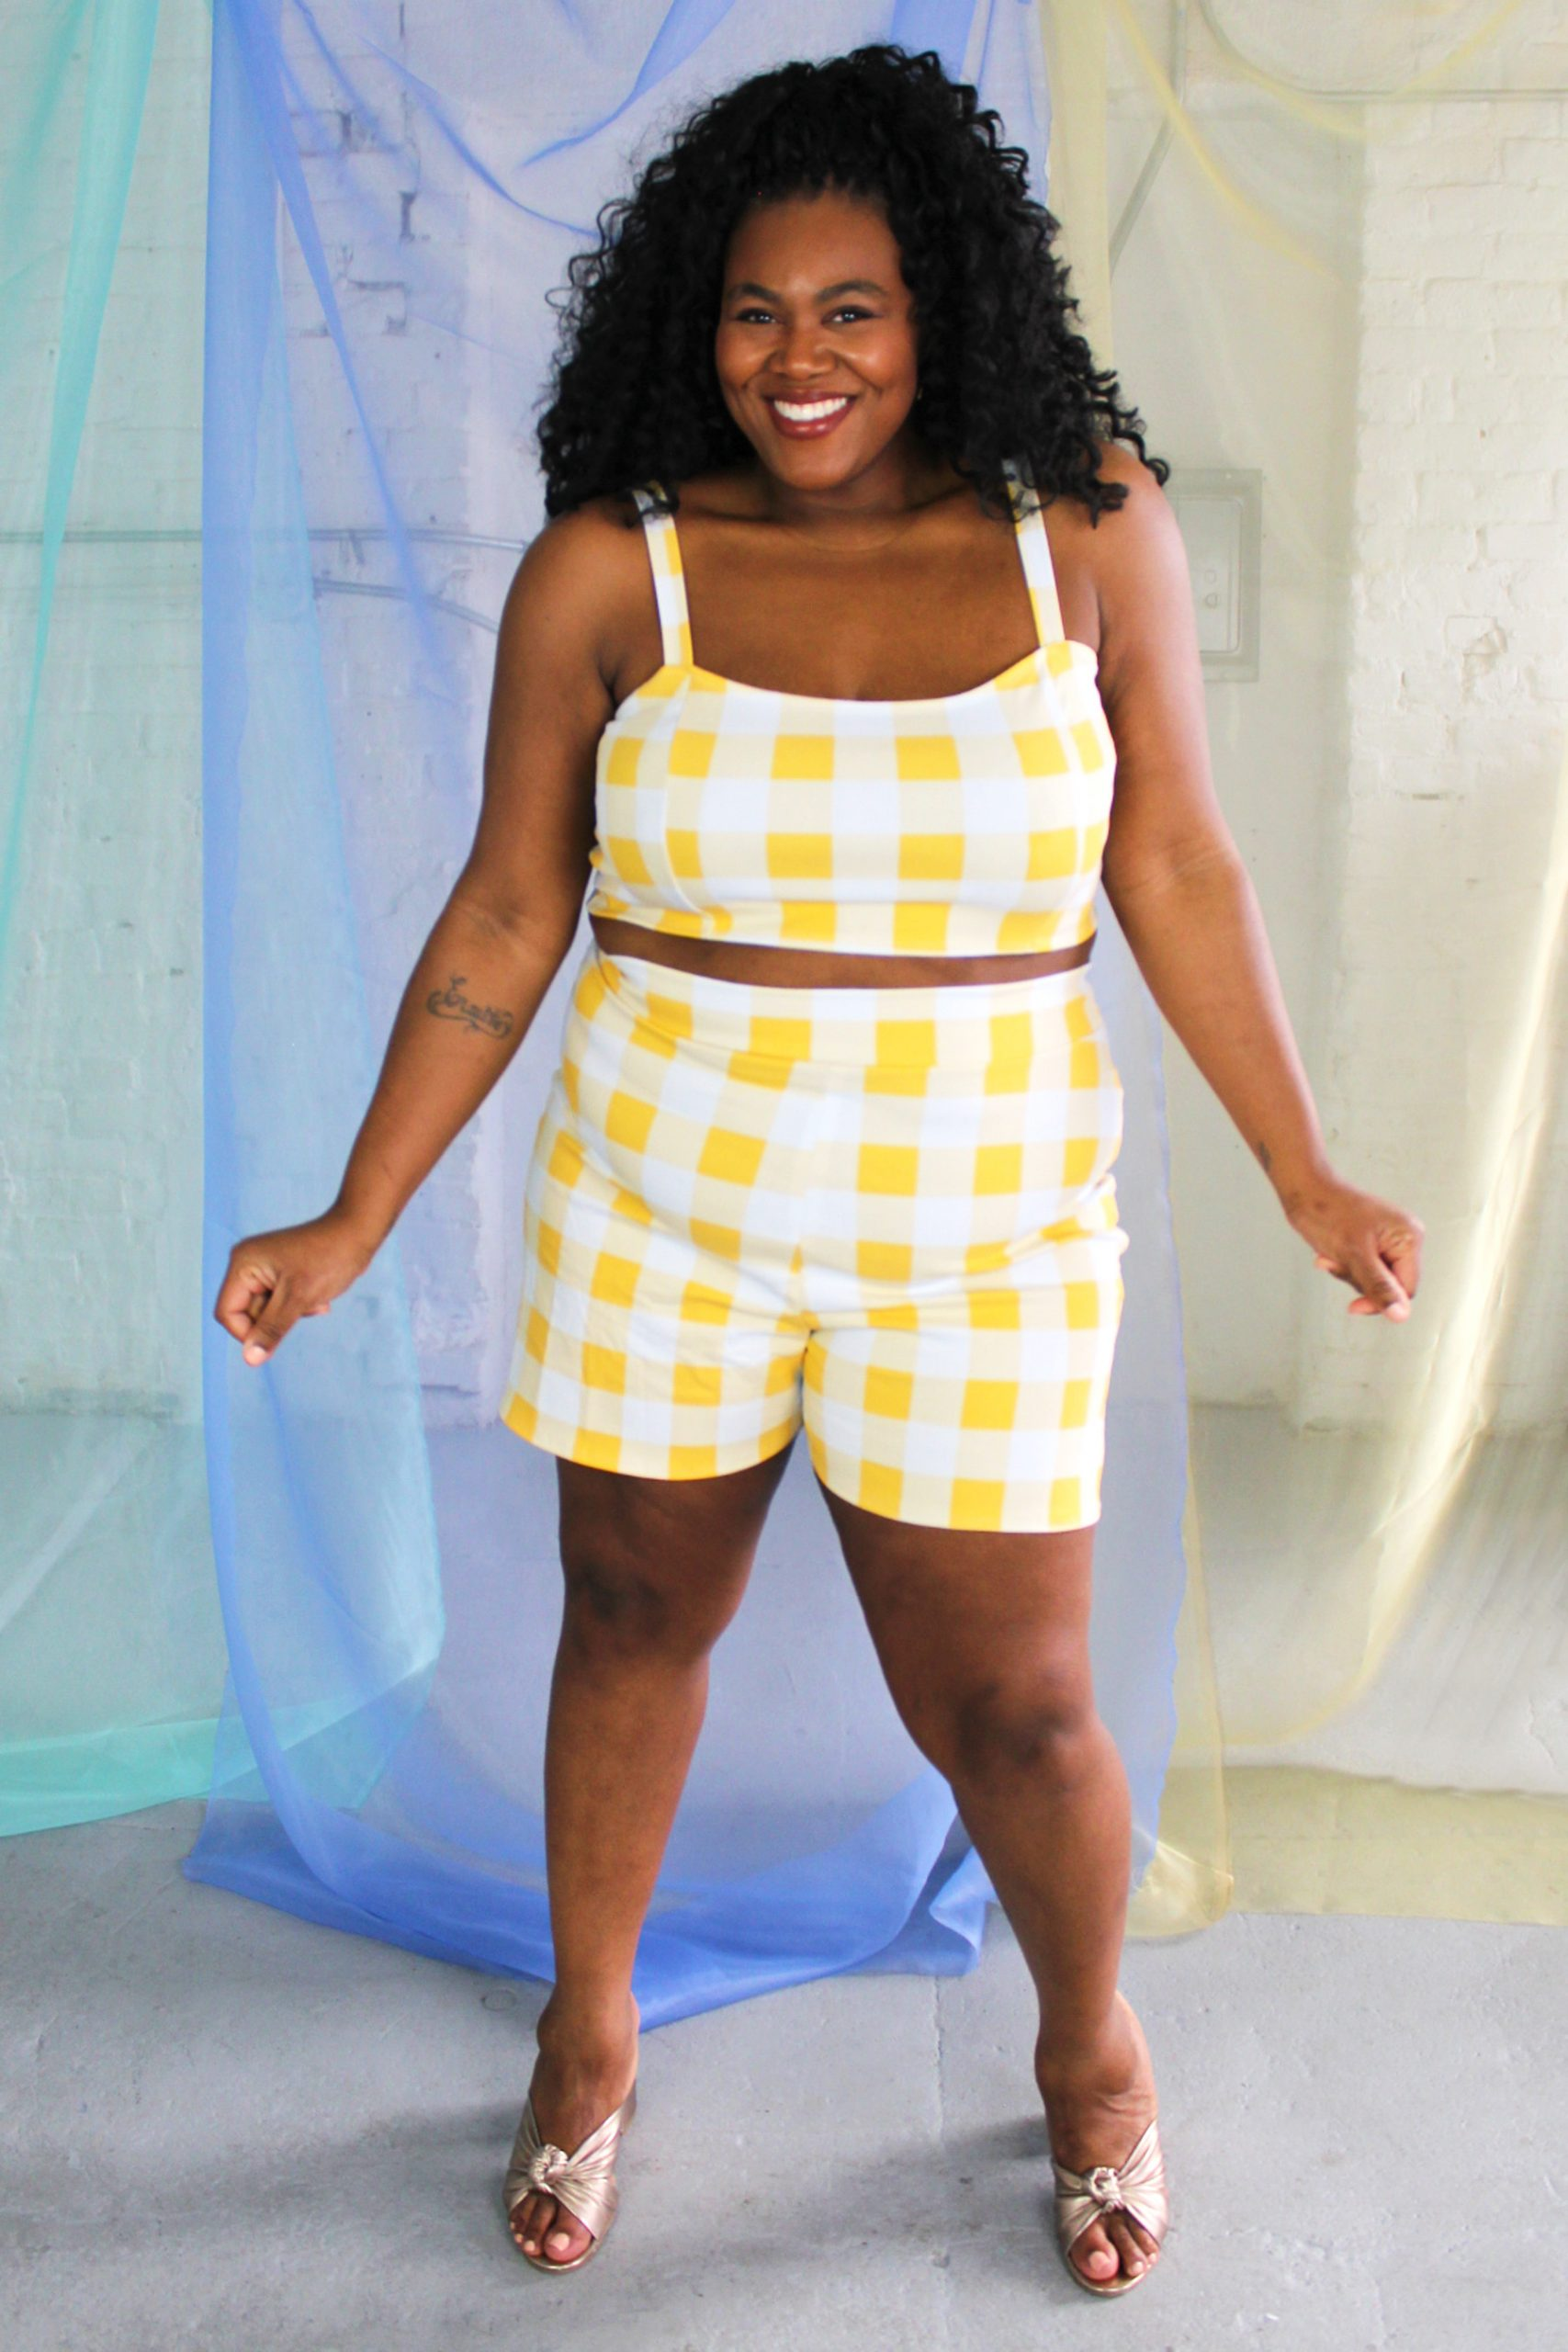 Black plus size female model with curls wearing yellow and white check crop top and high waist shorts ethically handmade